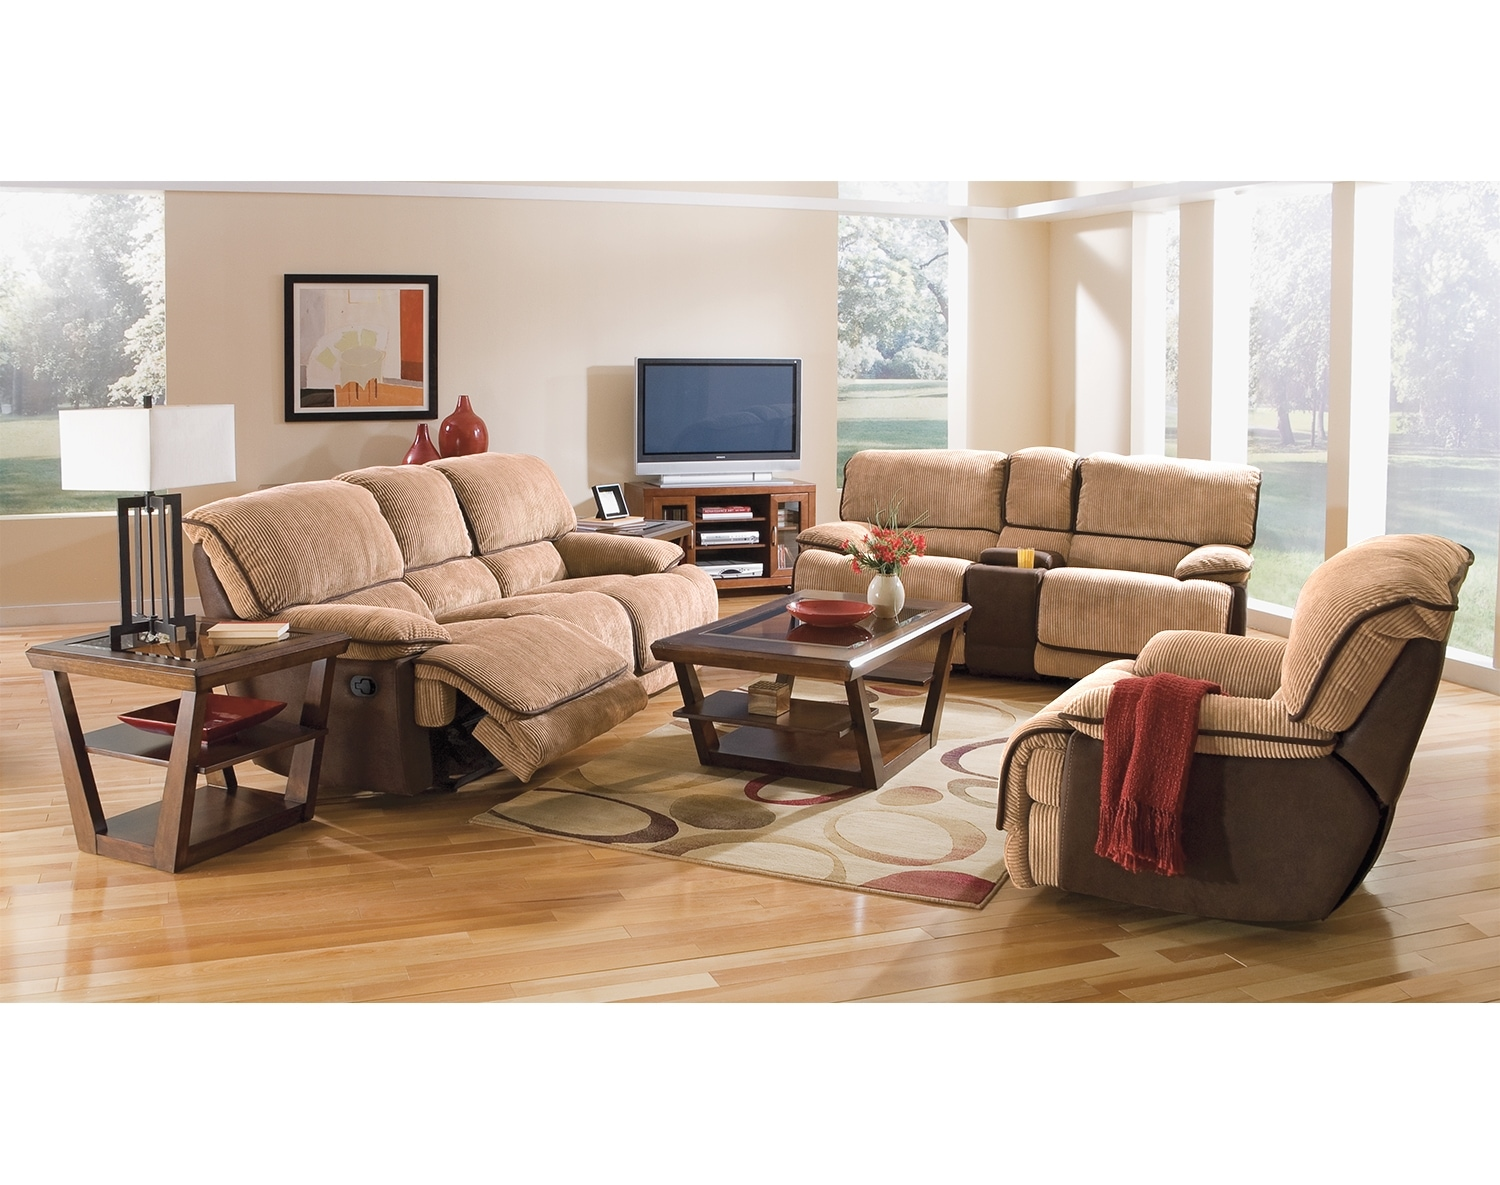 Living Room Furniture - The Putnam Camel Collection - Dual Reclining Sofa